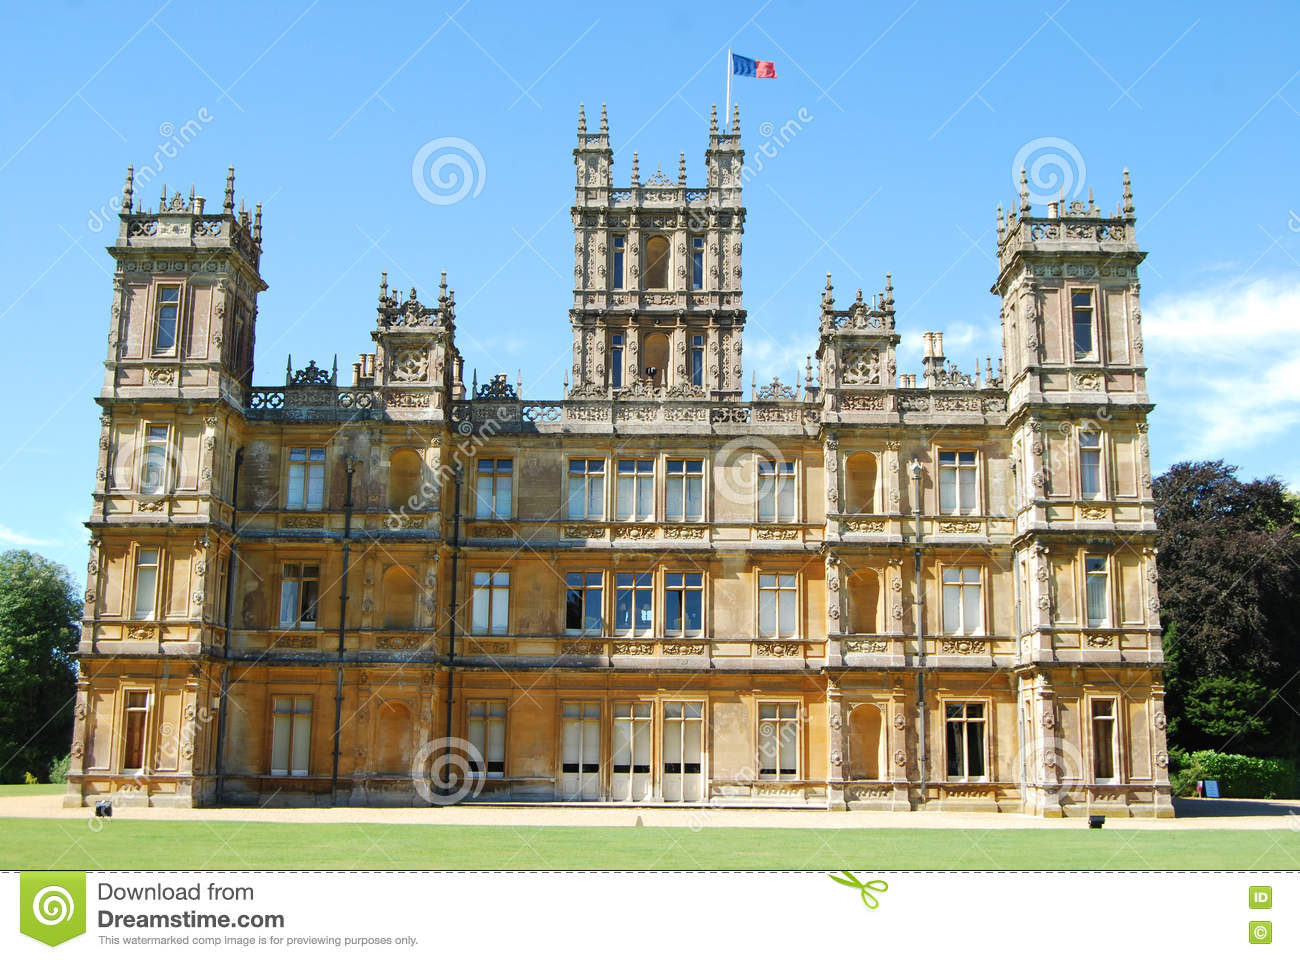 Floor Plans Of Tv Show Houses Highclere Castle Known Popularly As Downton Abbey Stock